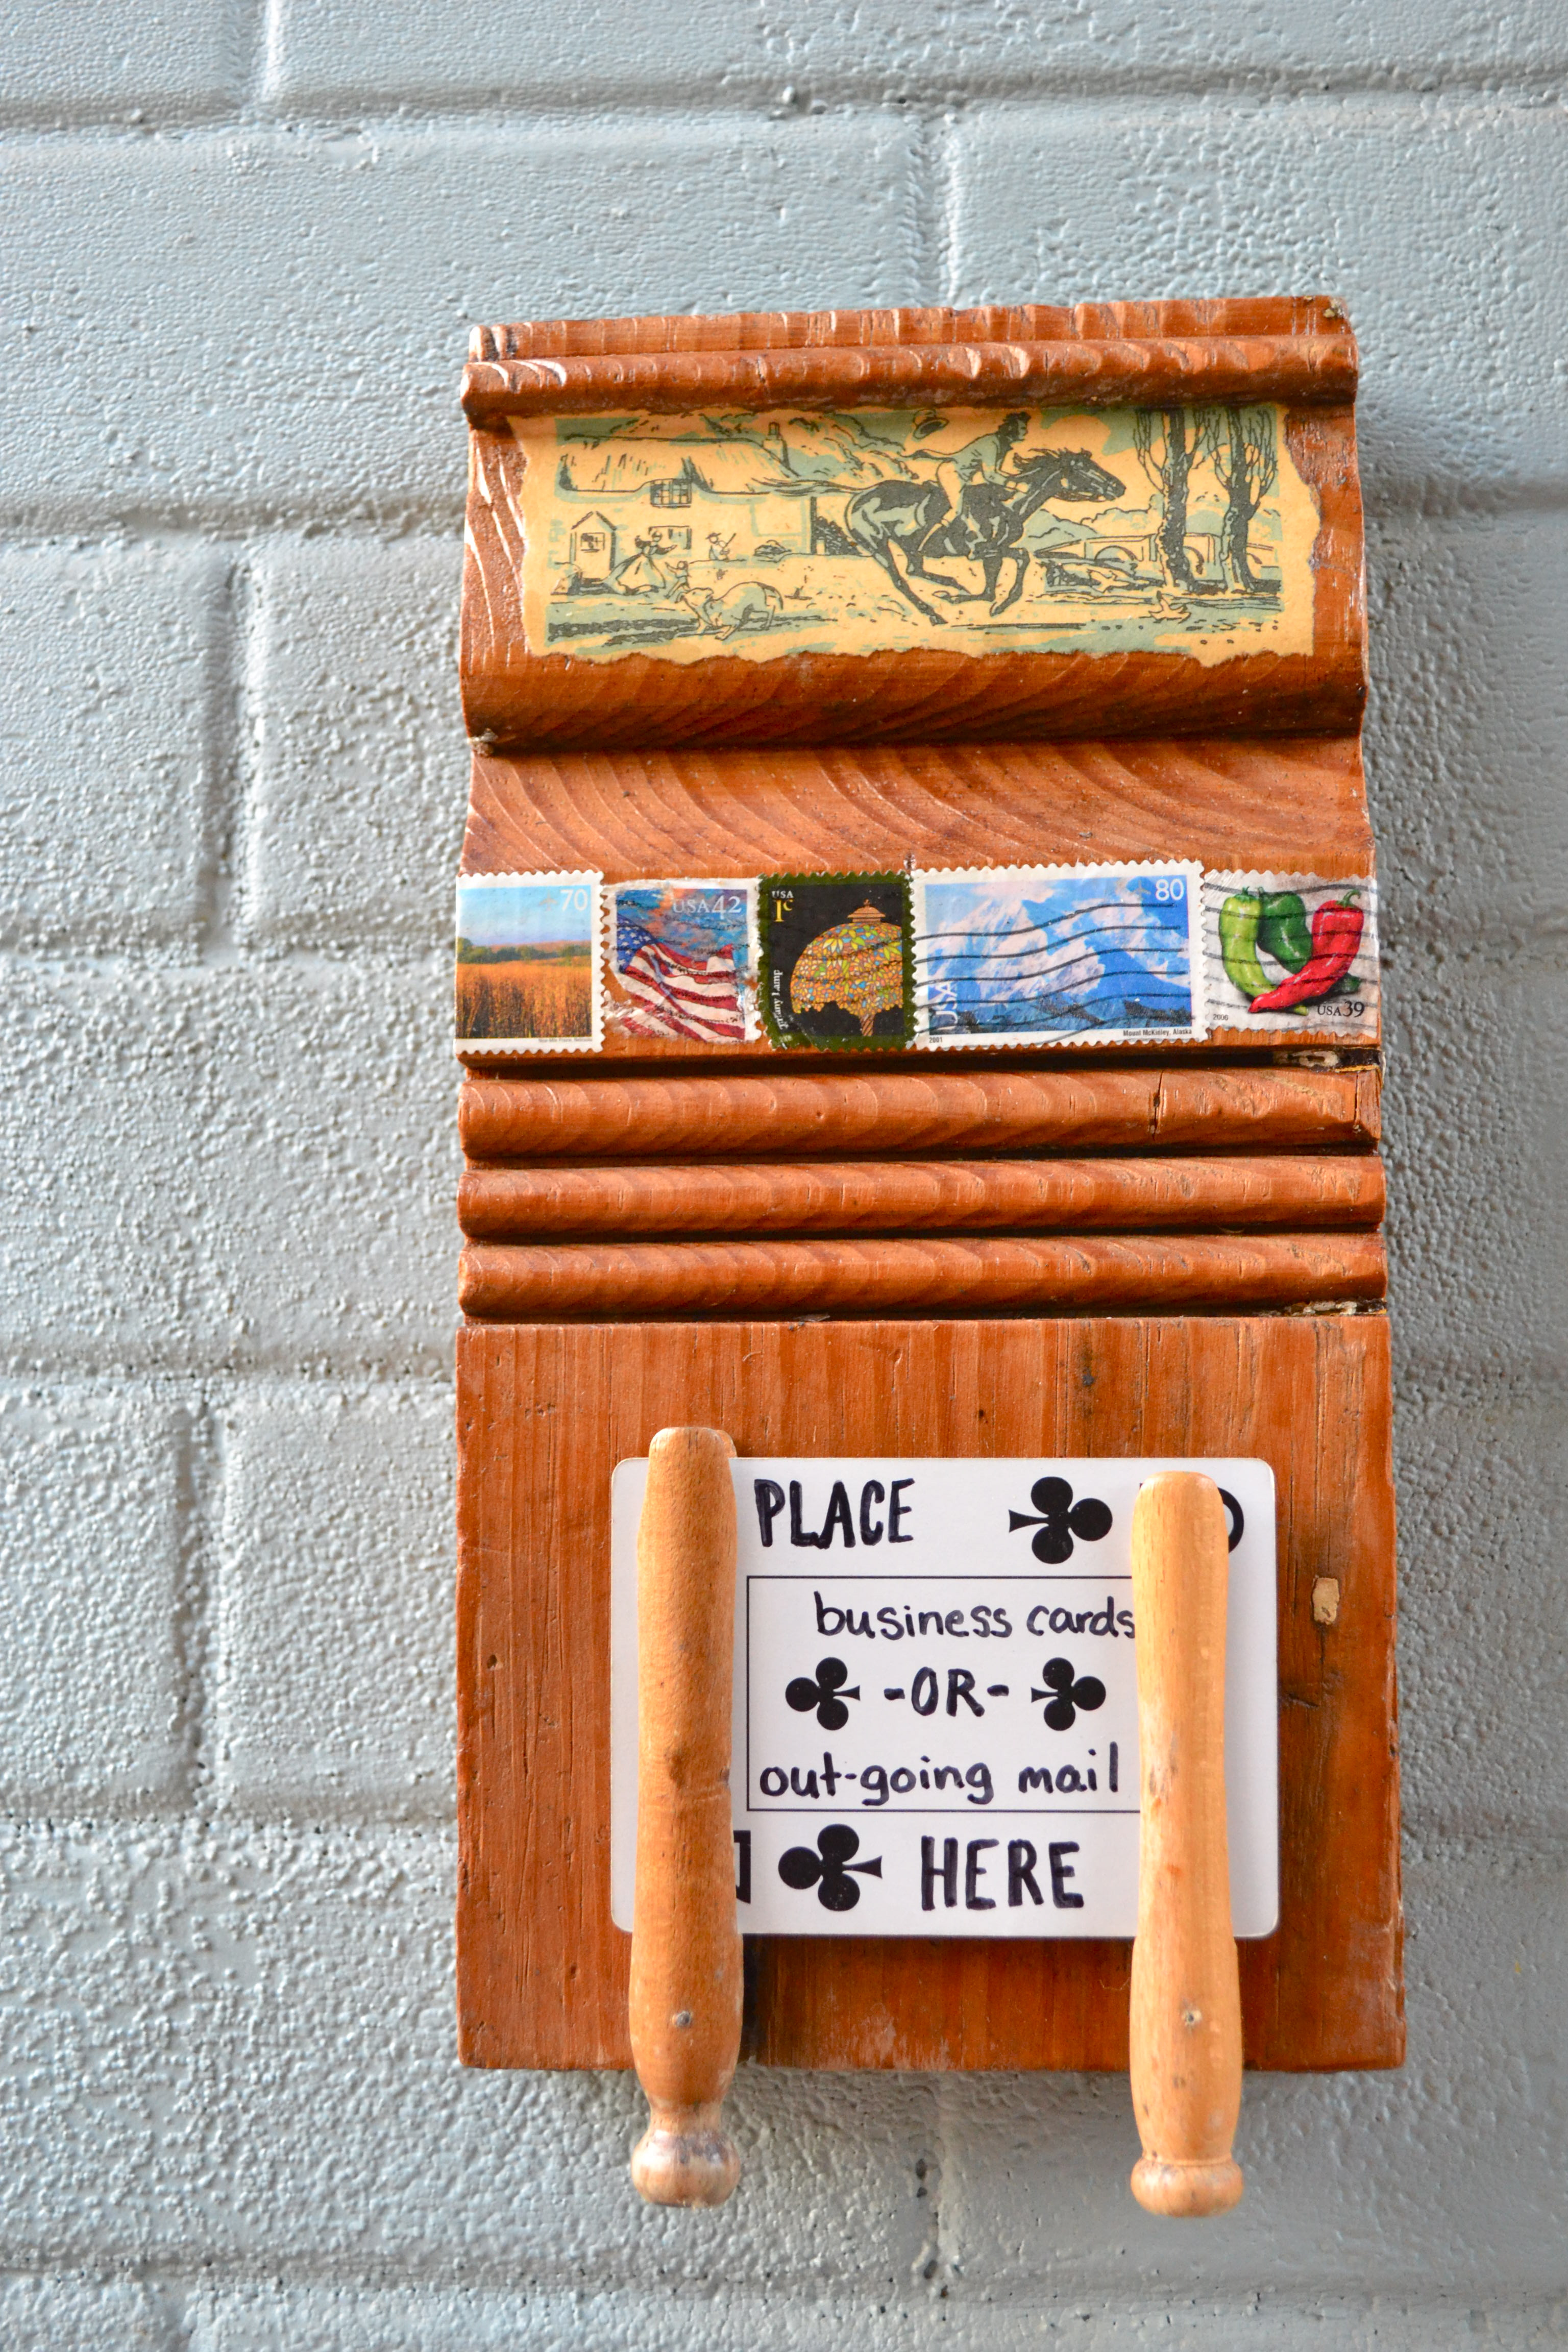 Stamp Outgoing Mail/Business Card holder